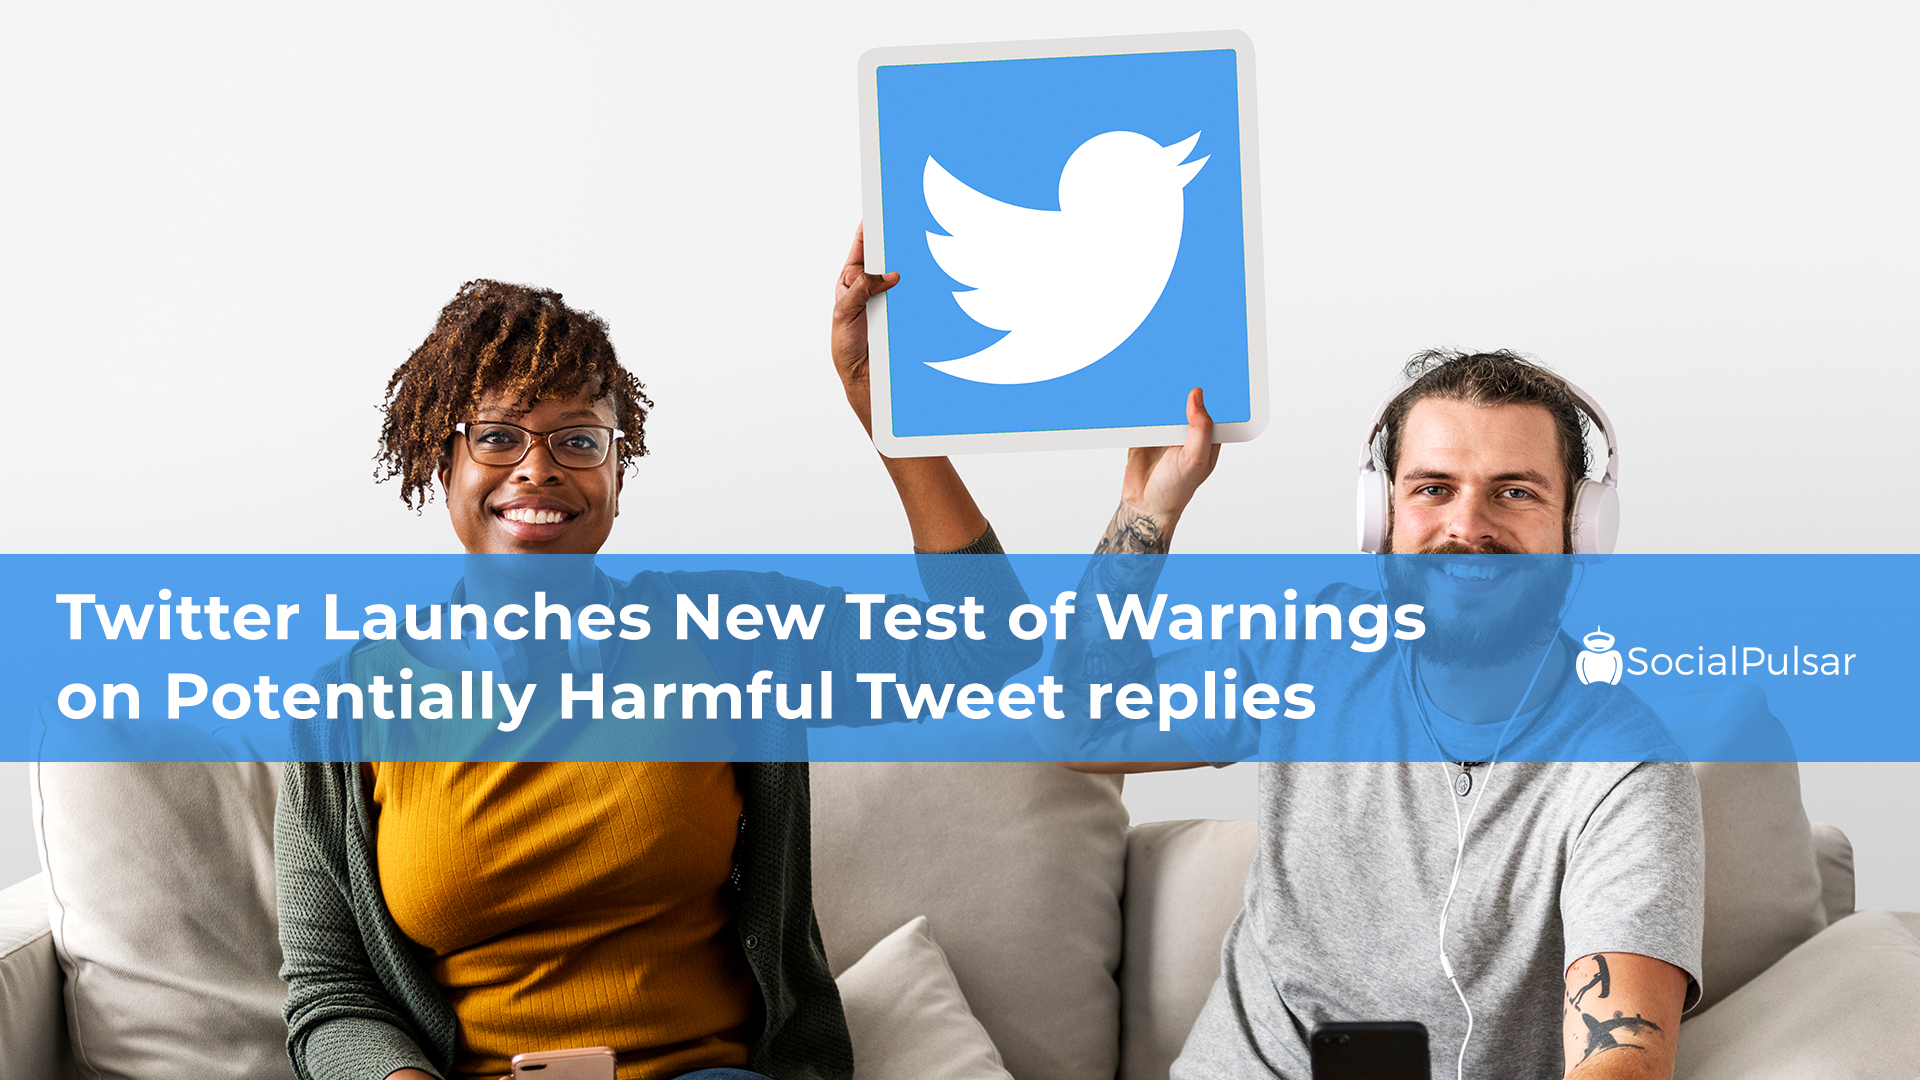 Twitter Launches New Test of Warnings on Potentially Harmful Tweet Replies